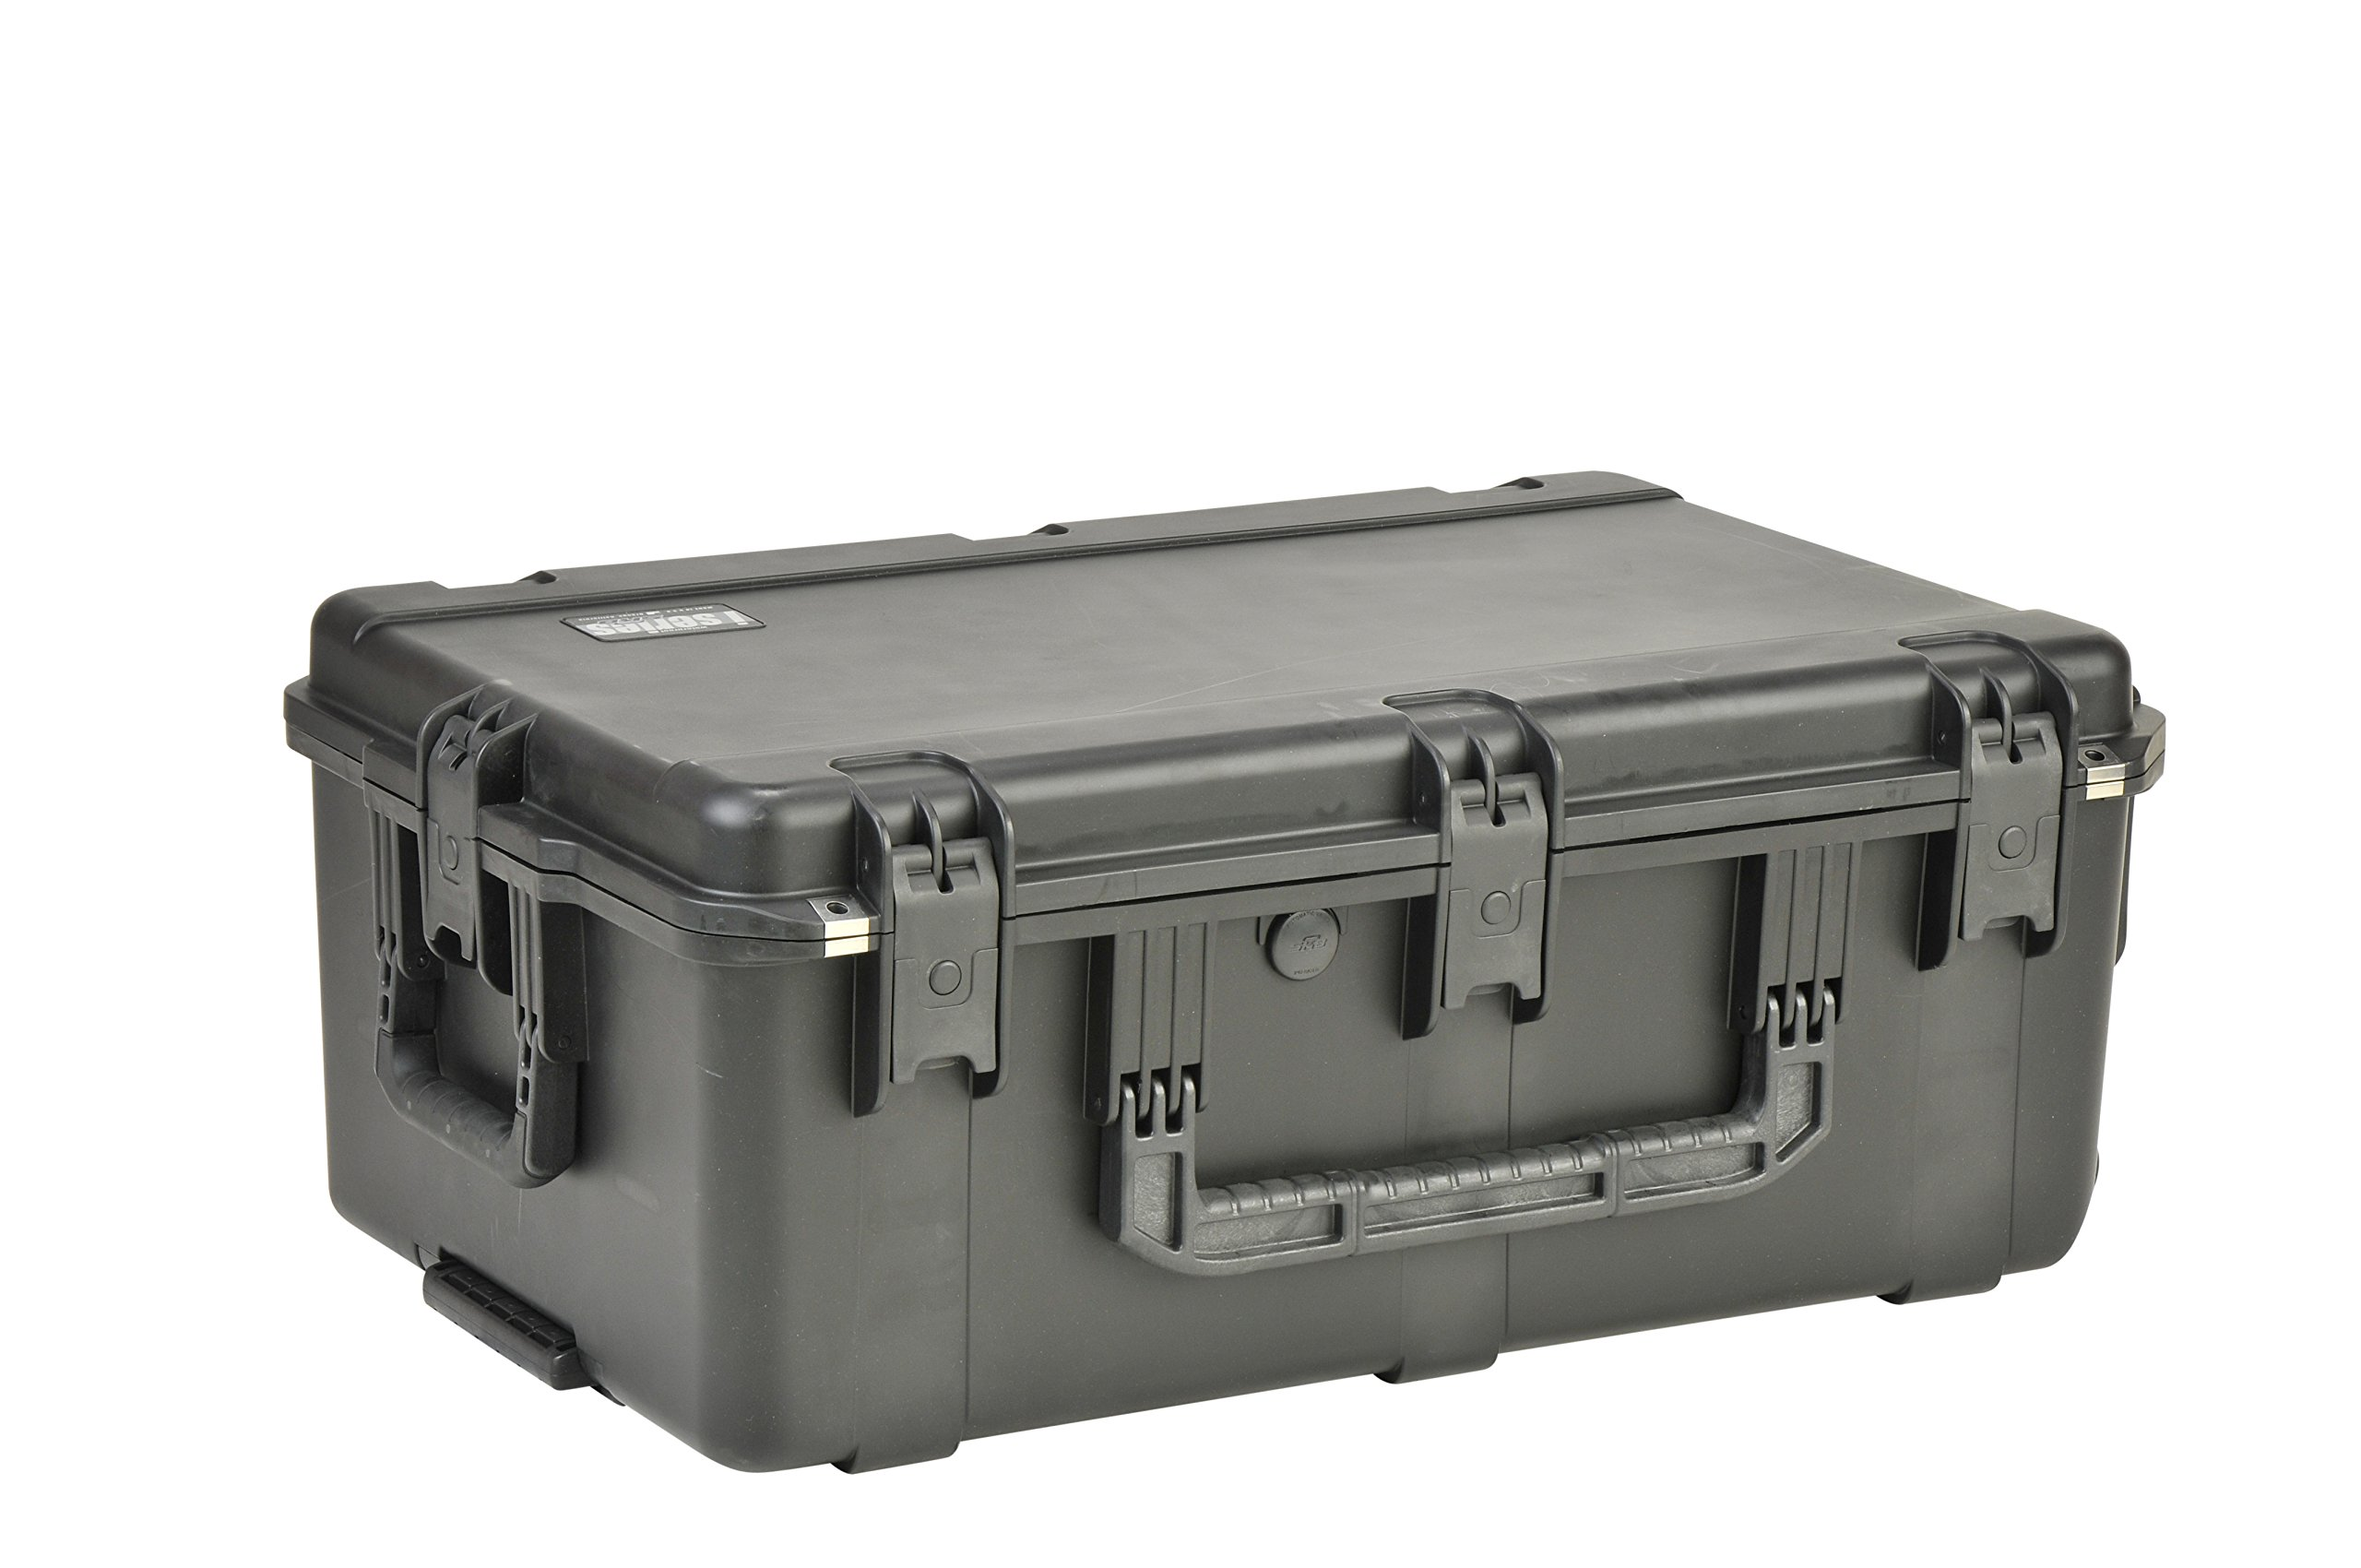 SKB Injection Molded Water-tight Case 29 x 18 x 10 Inches with wheels and Gray Dividers (3I-2918-10BD)